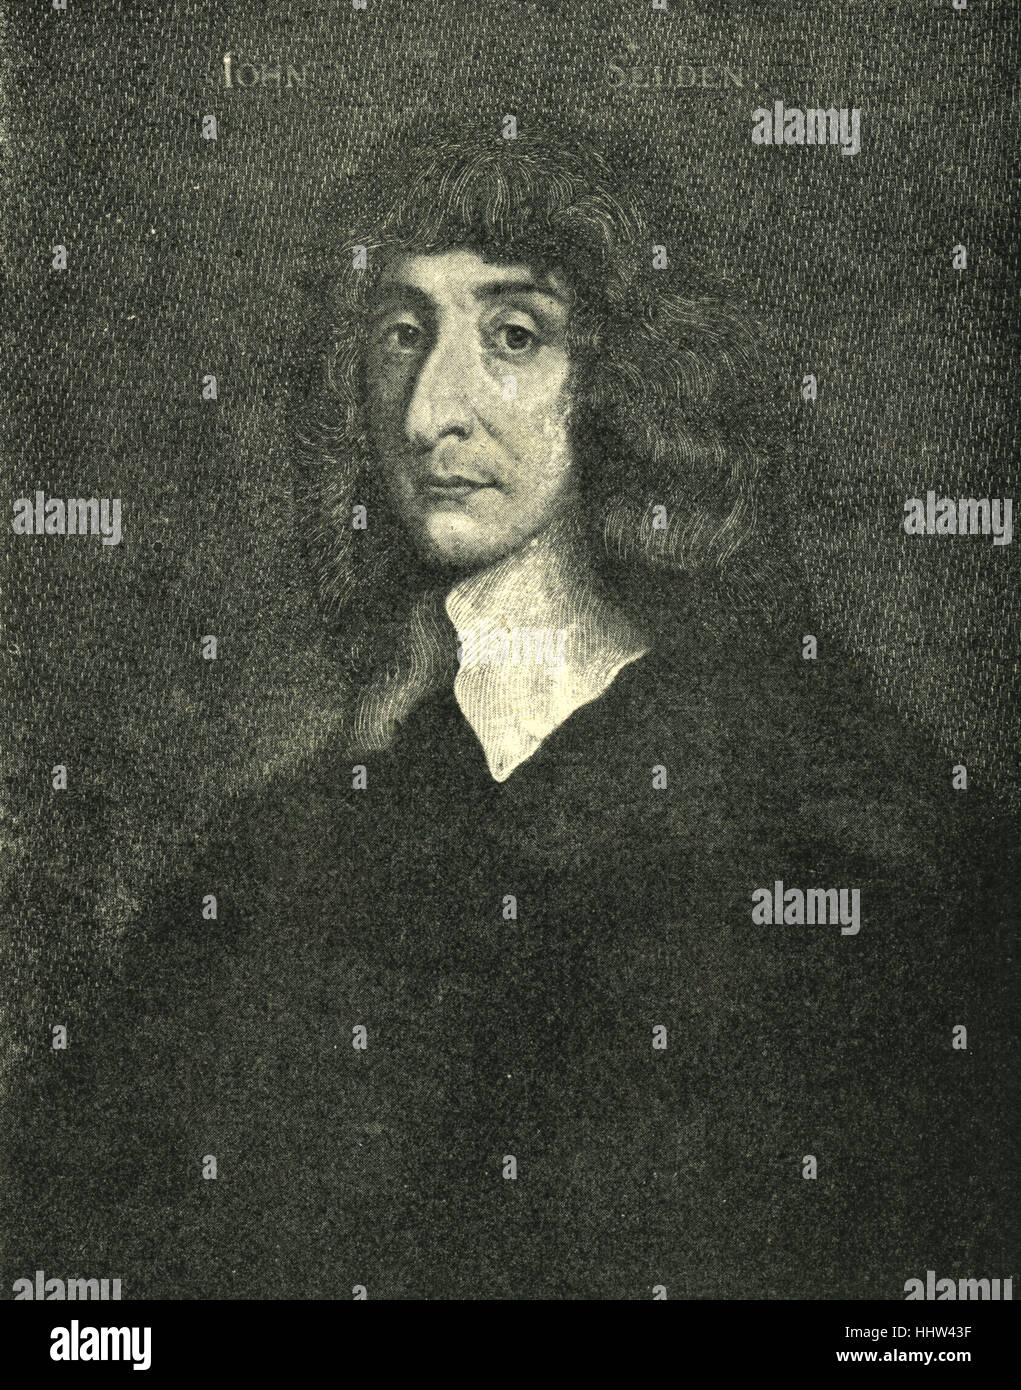 John Selden, portrait. English jurist and scholar of England's ancient laws and constitution and Jewish law, - Stock Image